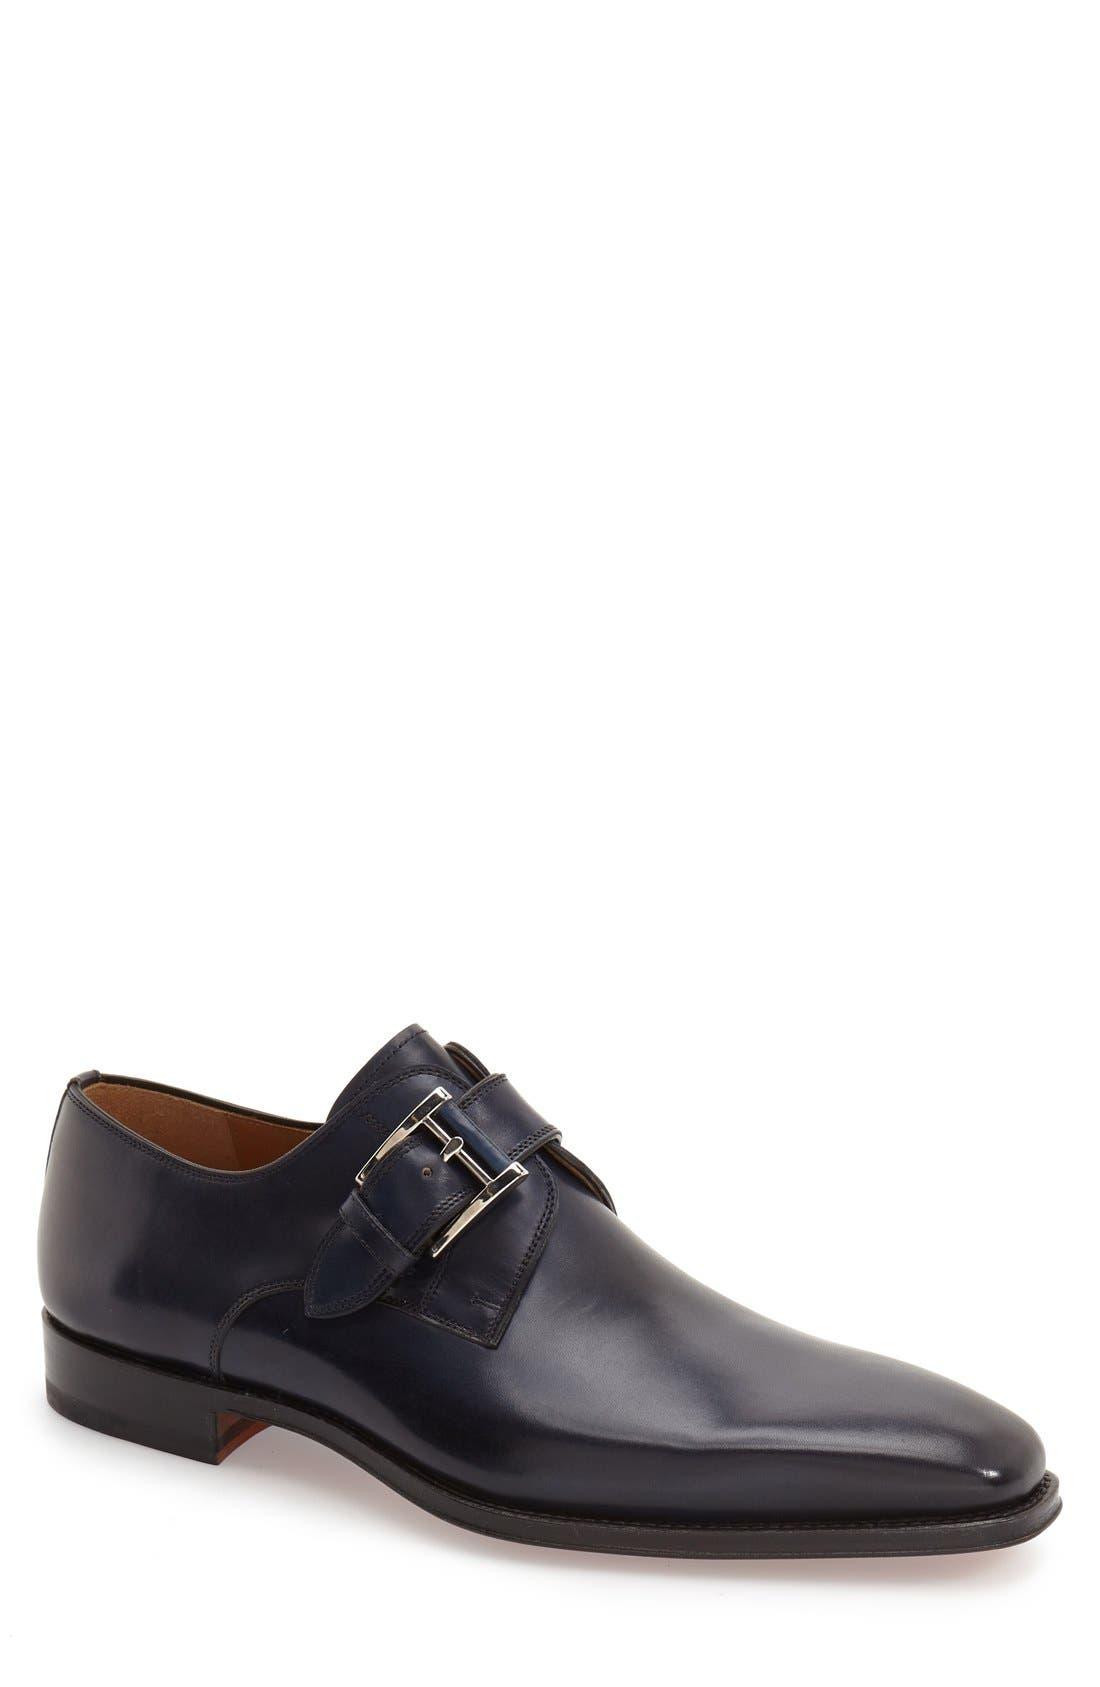 Marco Monk Strap Loafer,                             Main thumbnail 1, color,                             Navy Leather